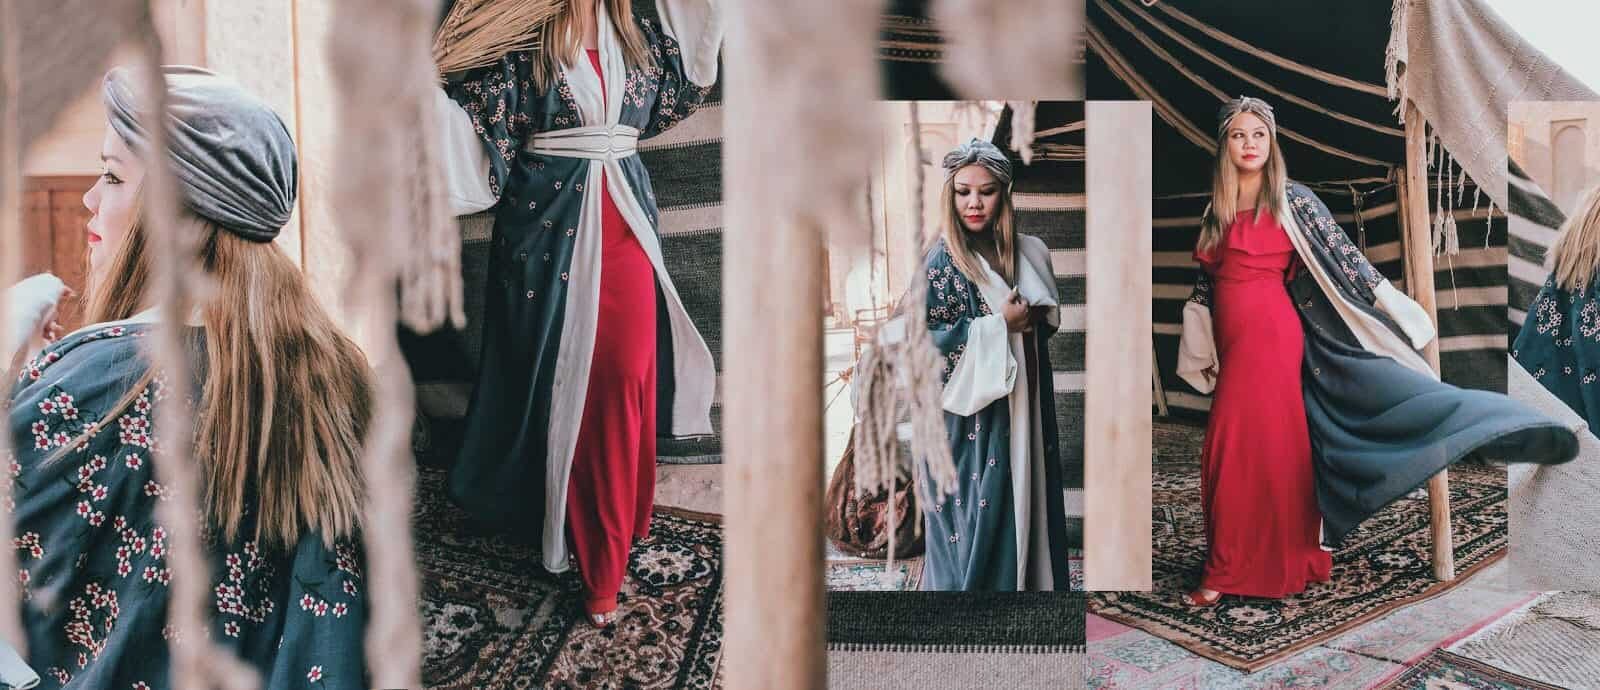 Ramadan Ready | Elabelz x The Look Bureau